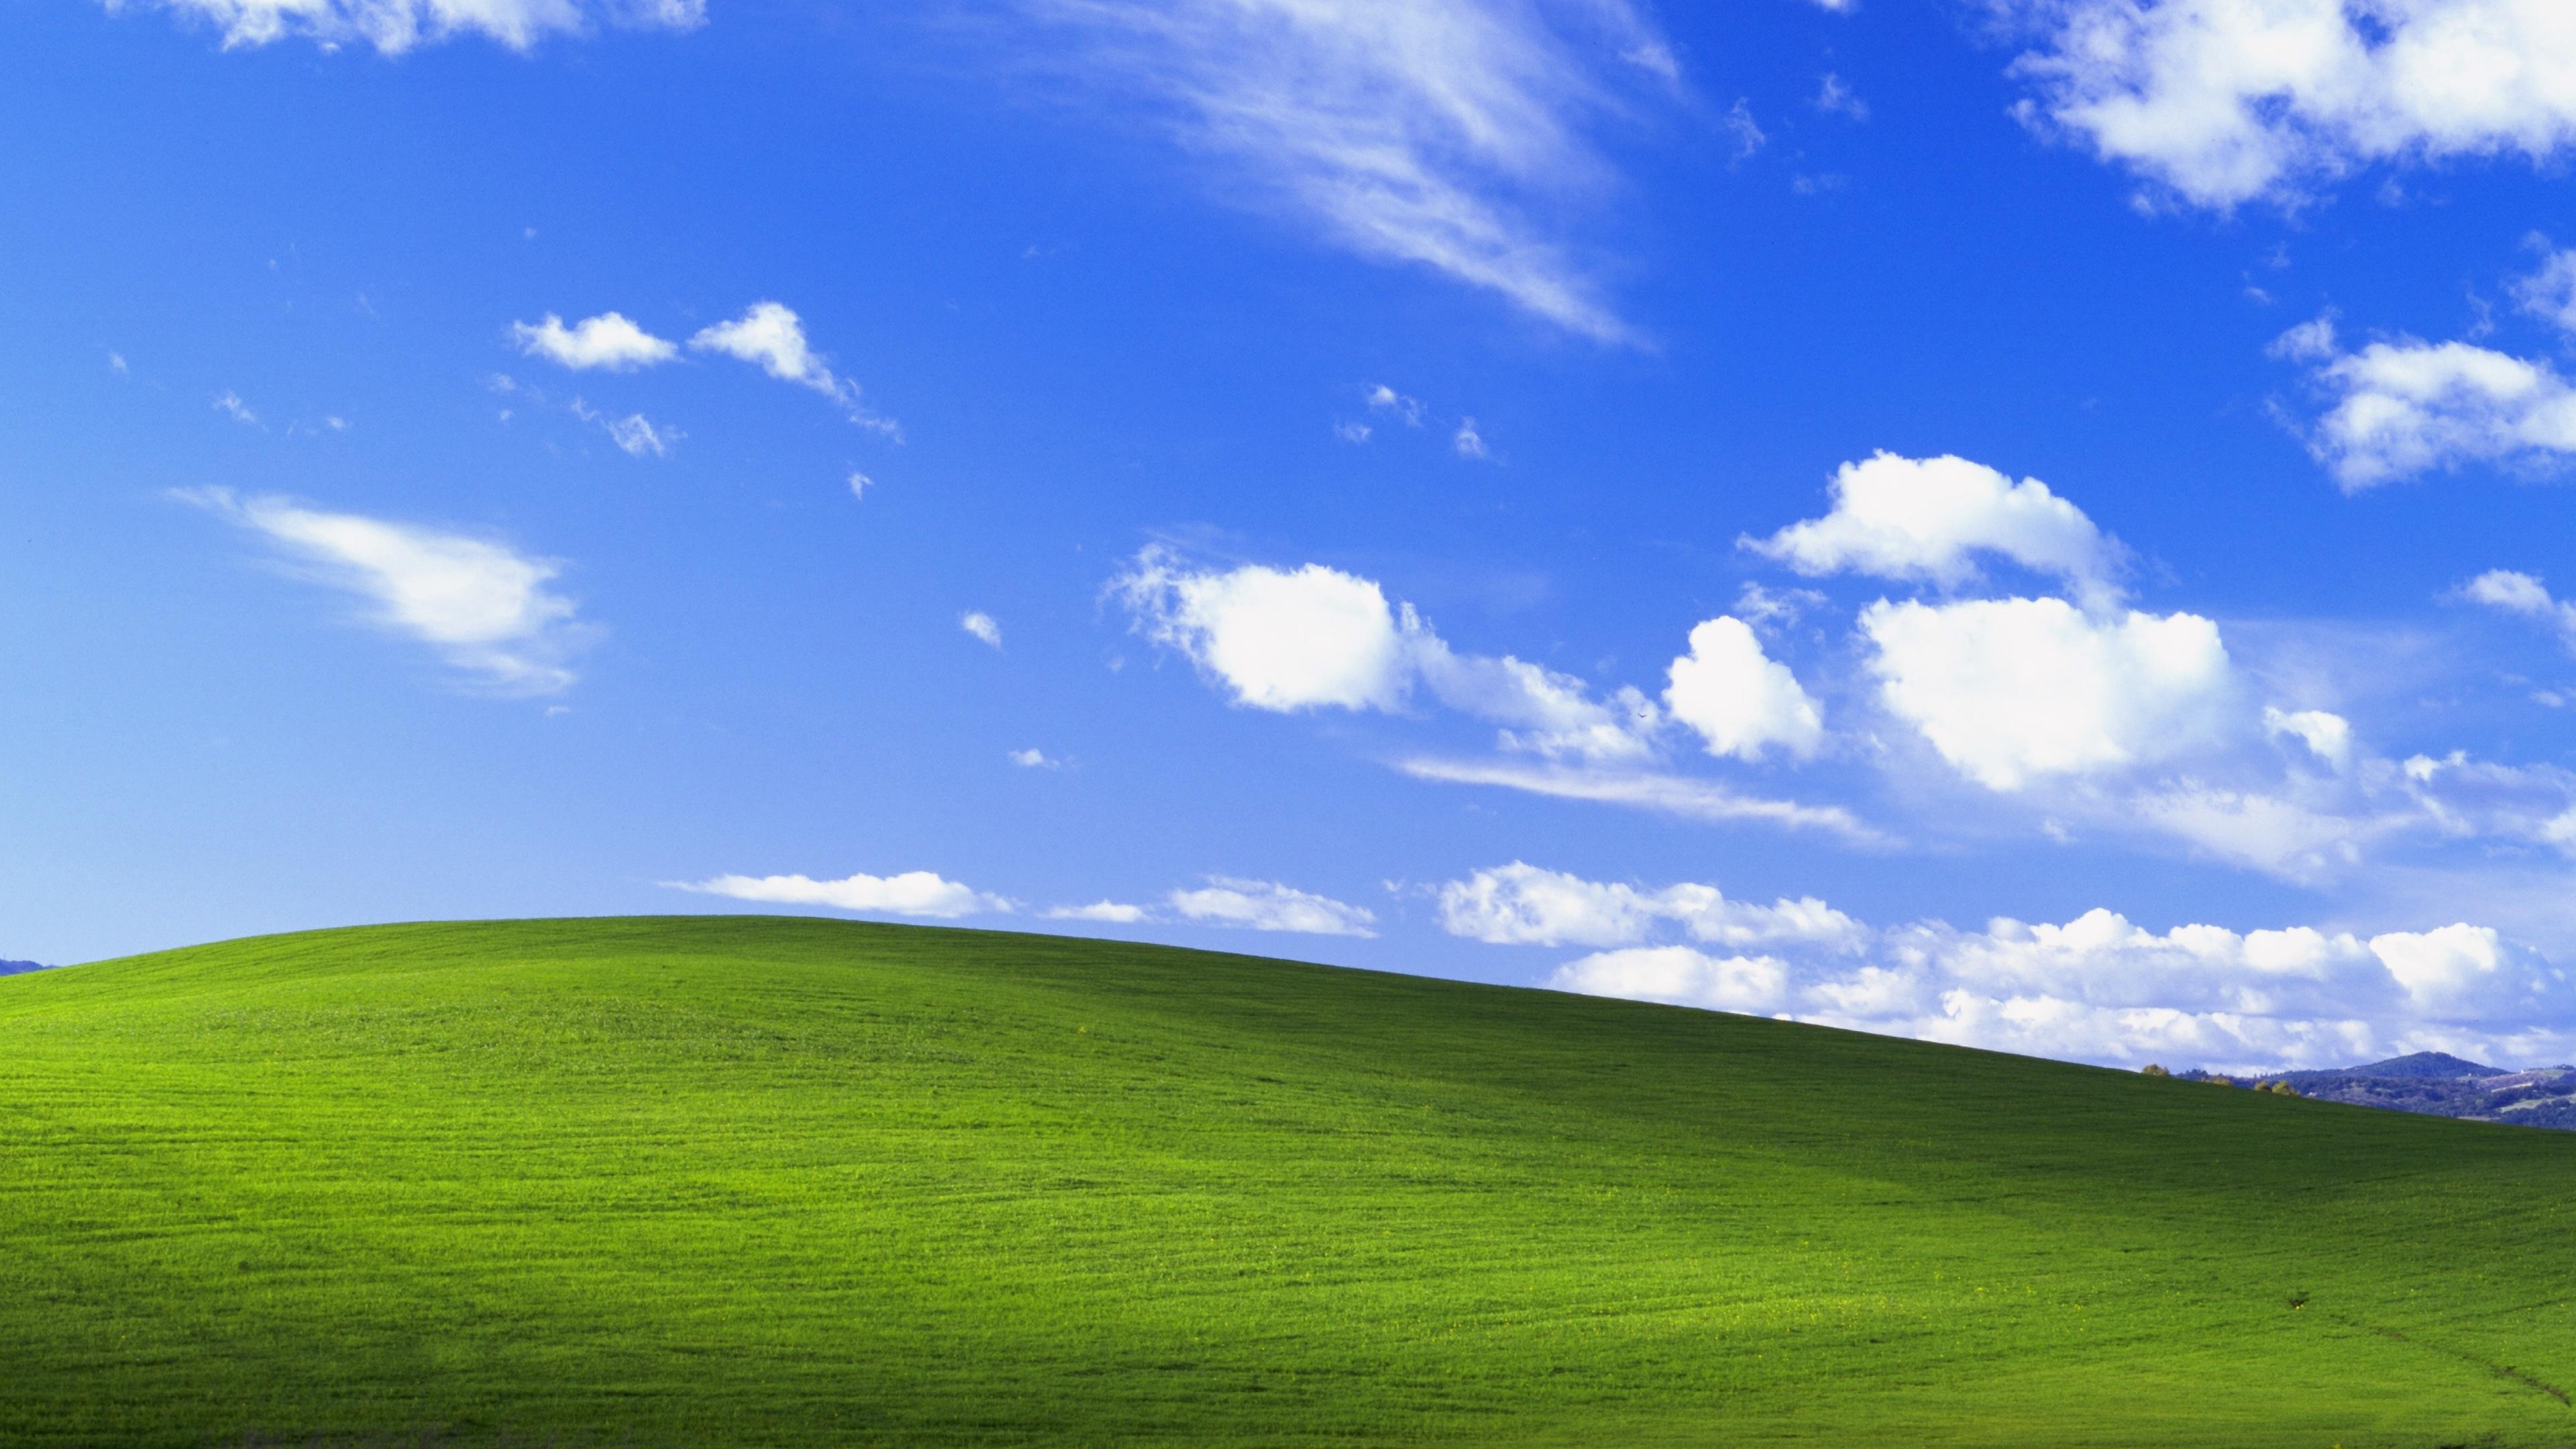 Steam Workshop Windows XP slightly animated wallpaper 3840x2160